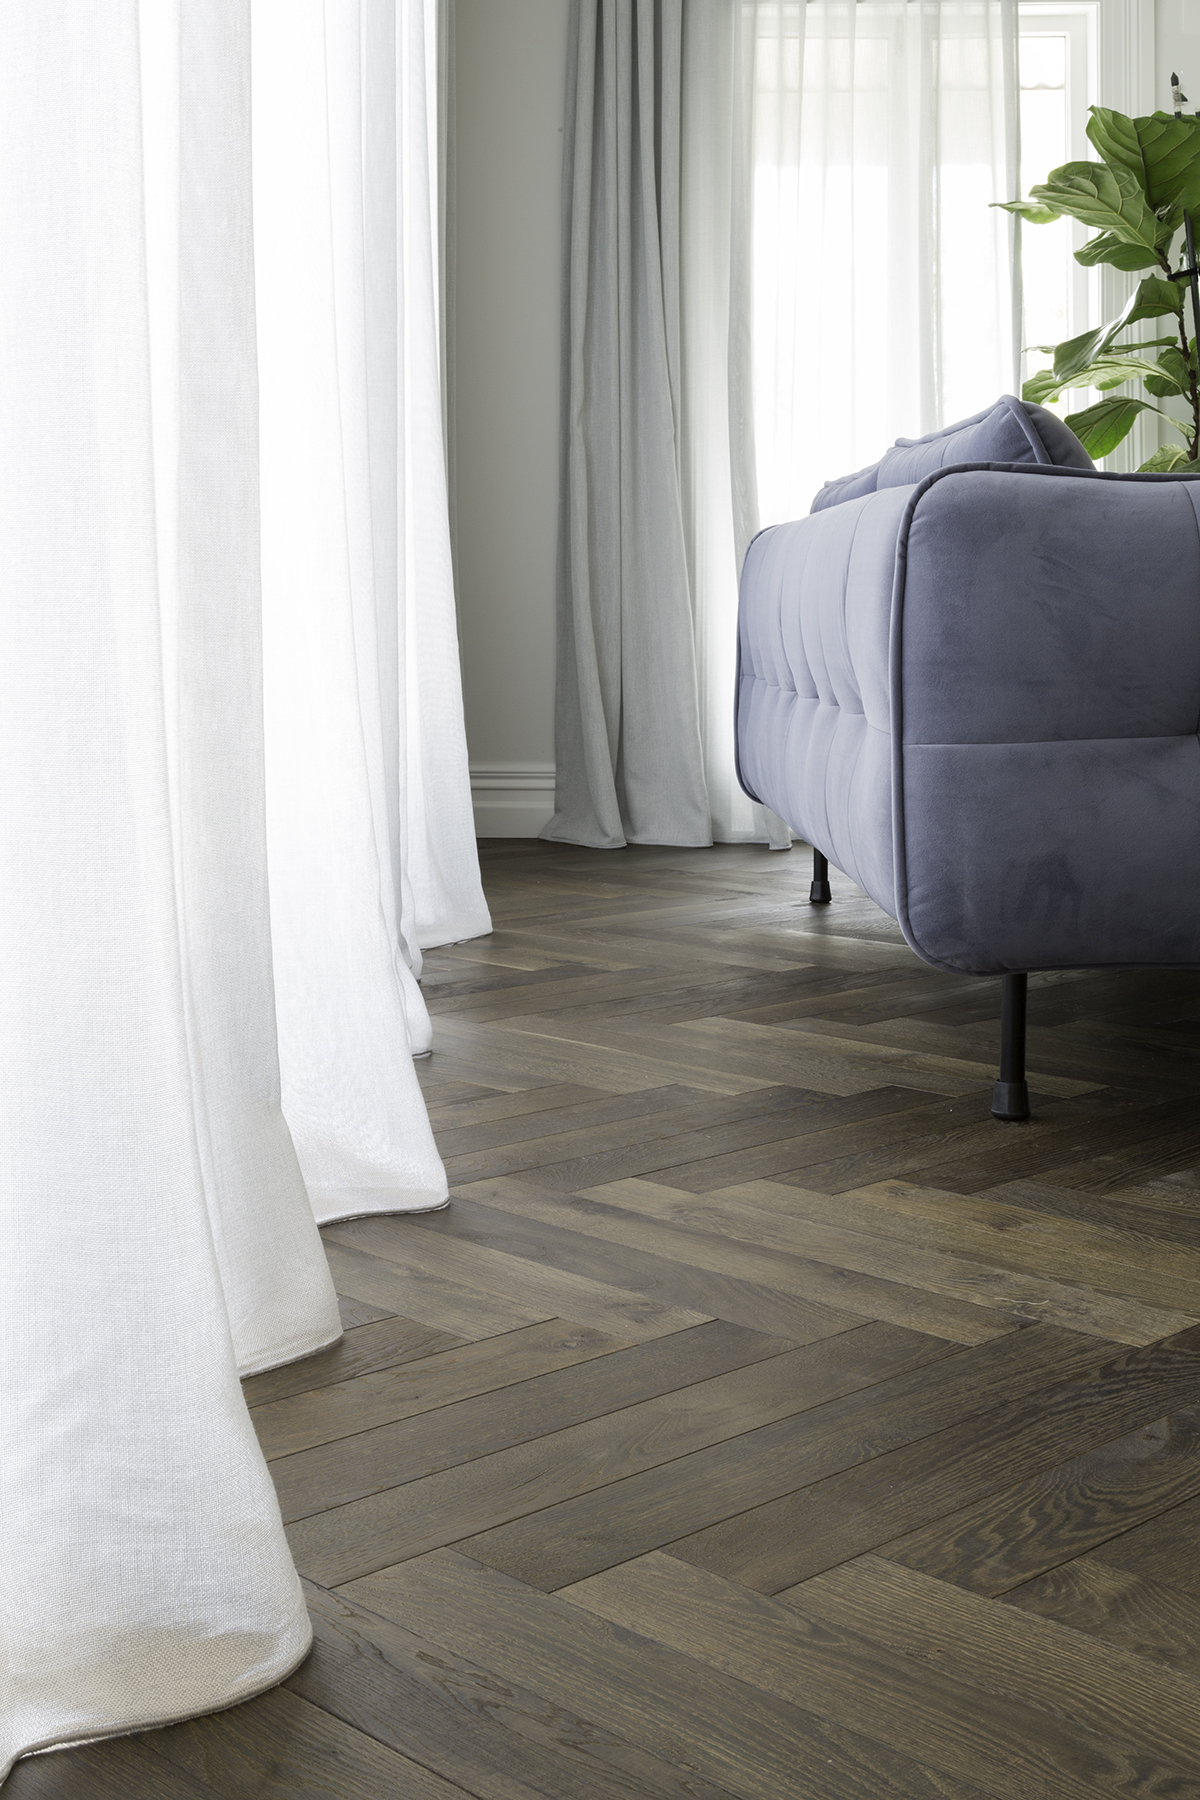 Marrone herring bone timber flooring